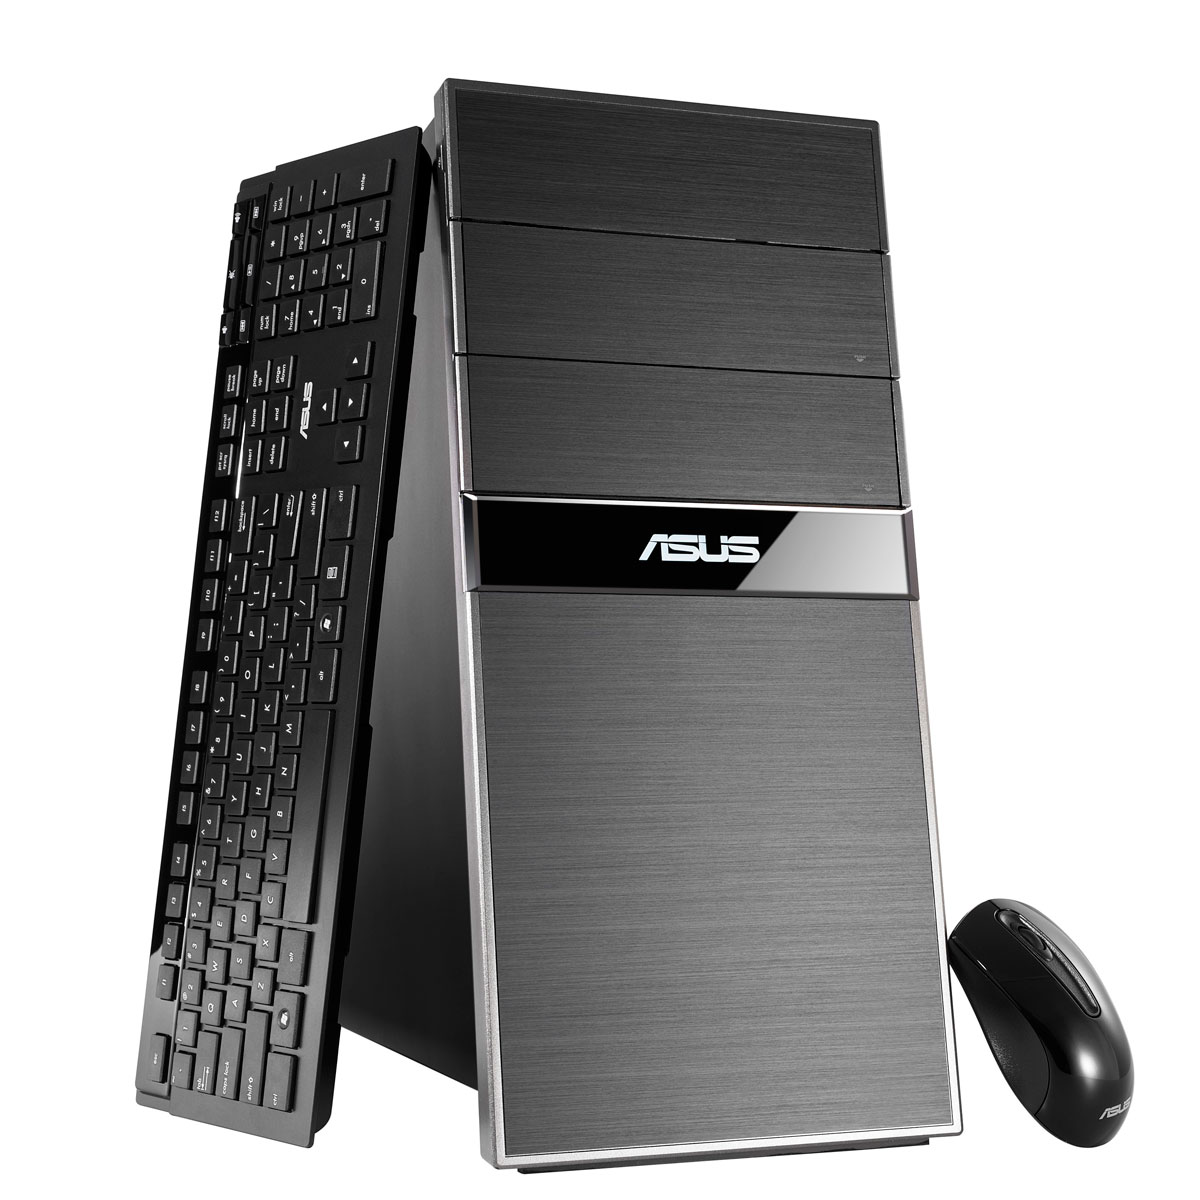 asus cg8270 fr0012s cg8270 fr012s achat vente pc de bureau sur. Black Bedroom Furniture Sets. Home Design Ideas